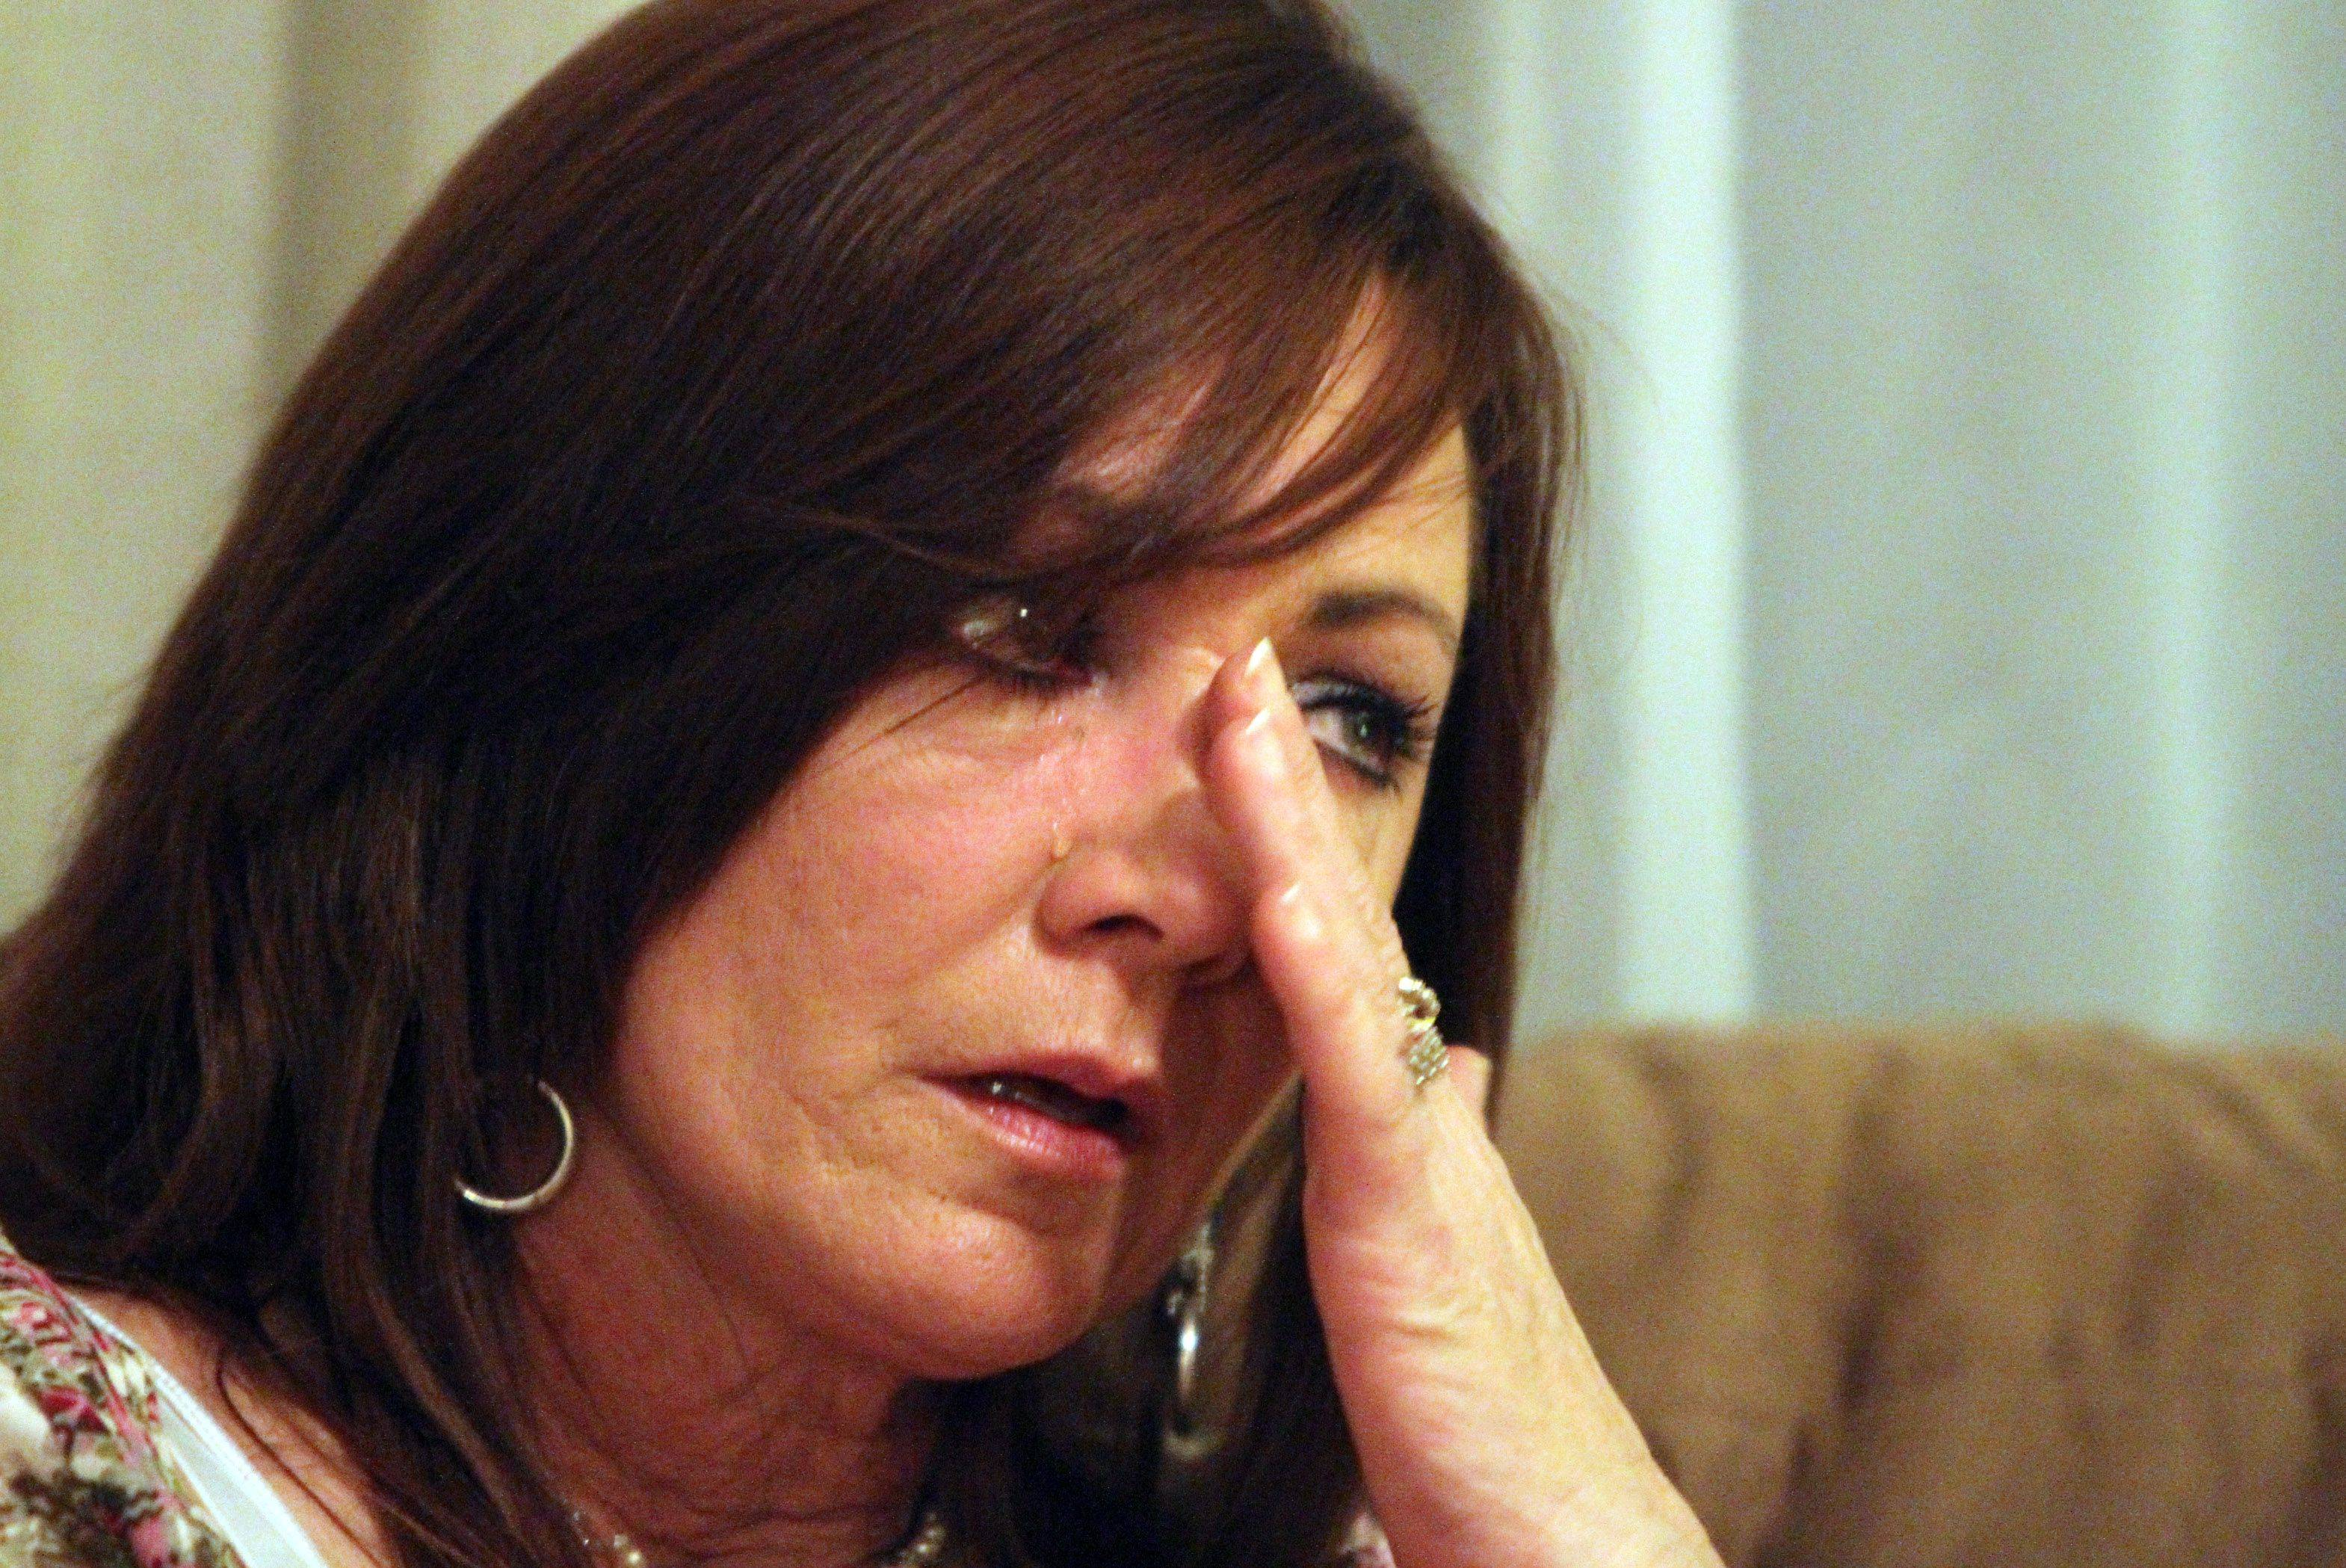 Nancy Kalinowski wipes a tear after talking about her daughter, Holly Staker, who was murdered in 1992.